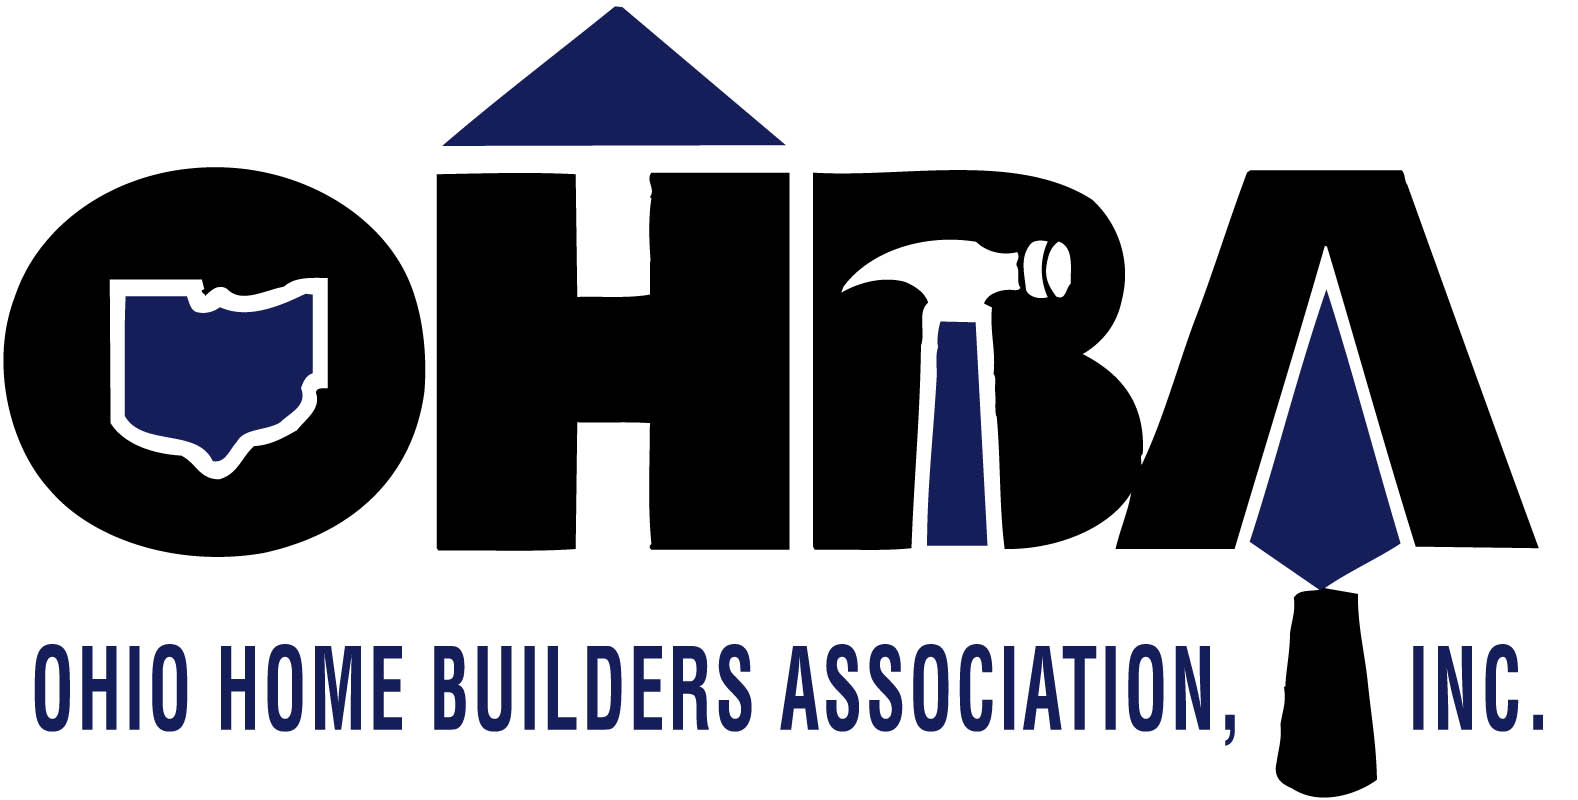 High Res. OHBA logo